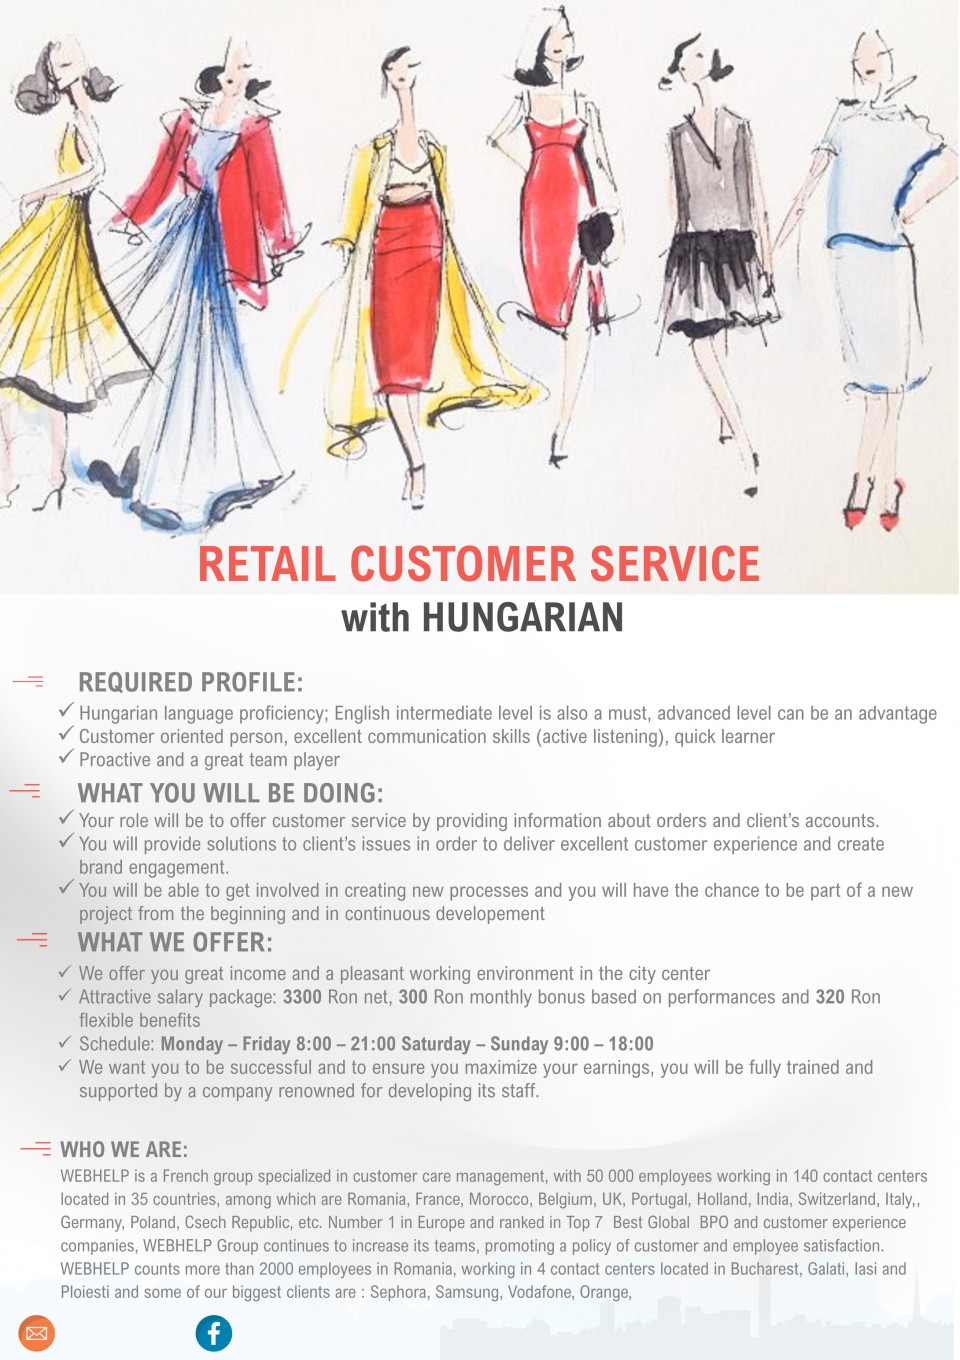 RETAIL CUSTOMER SERVICe with HUNGARIAN